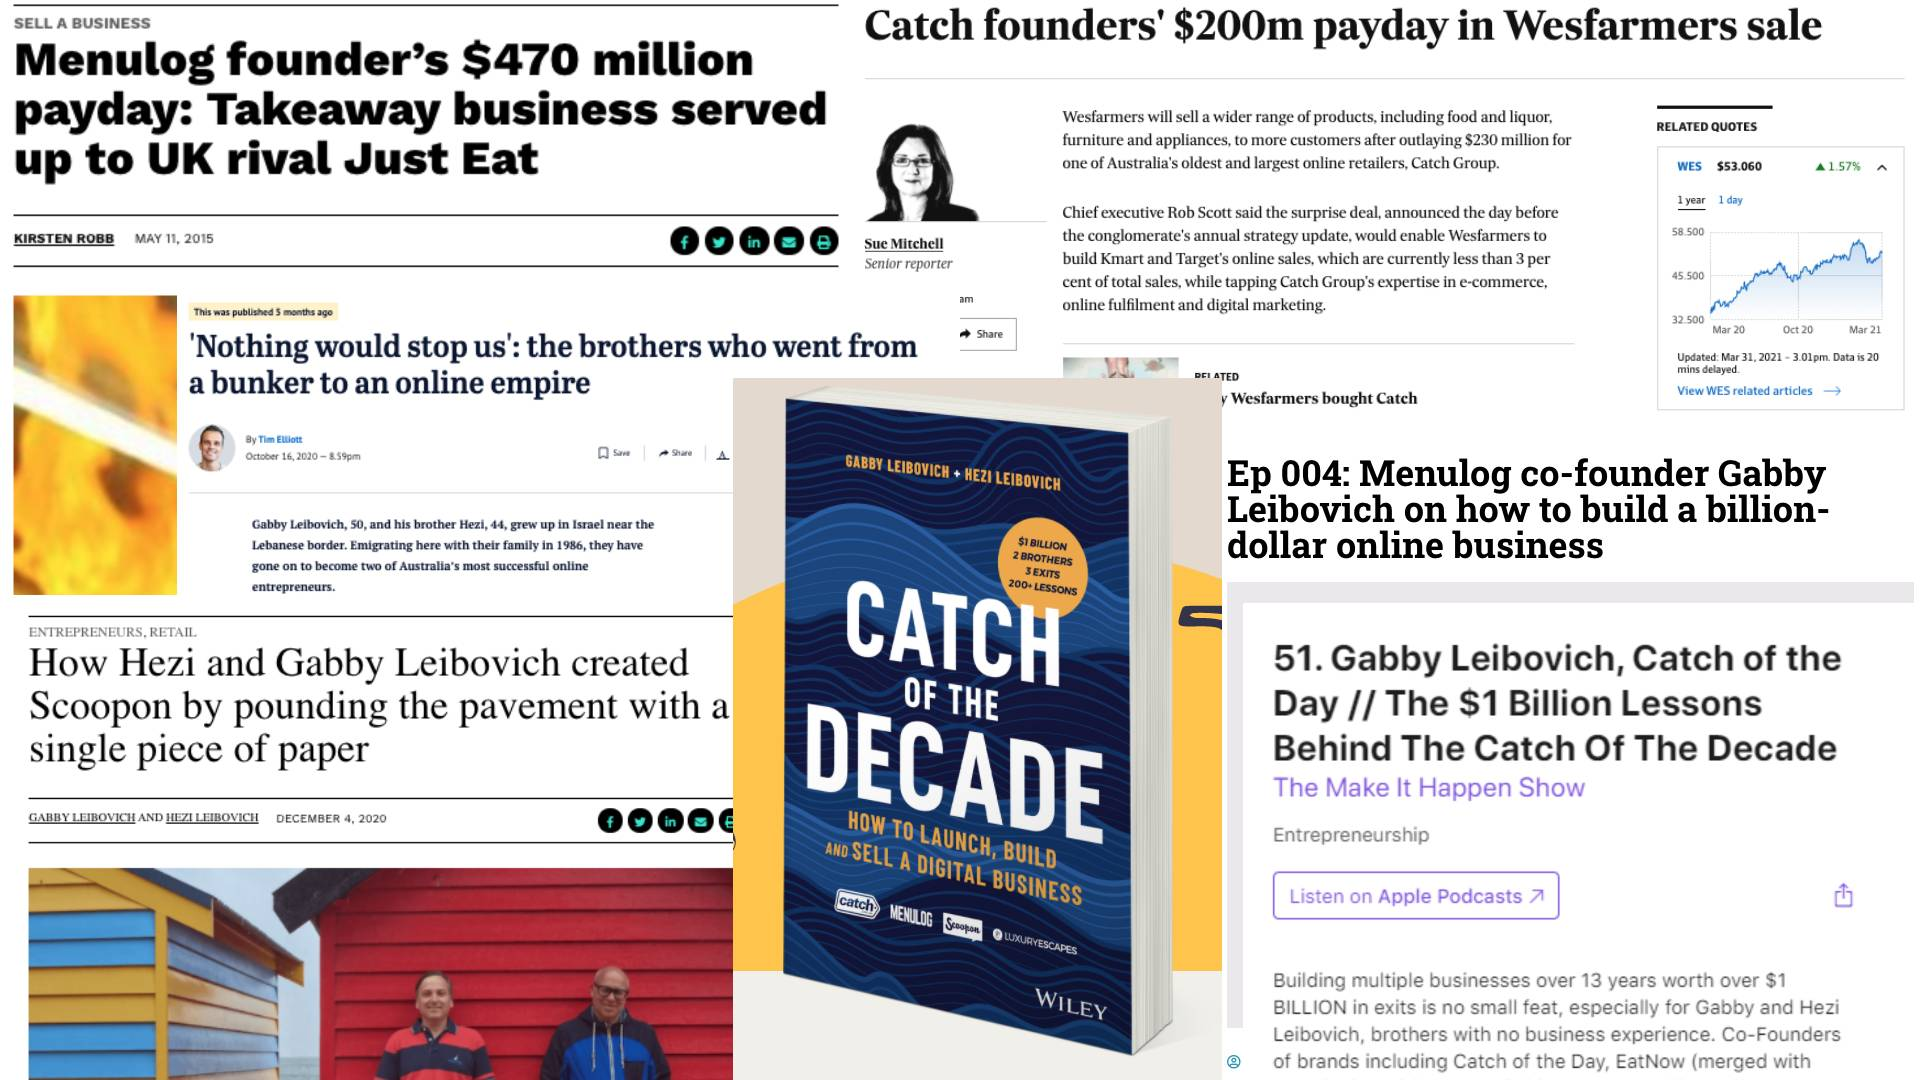 Gabby Leibovich public relations and news articles including Catch of the Decade book